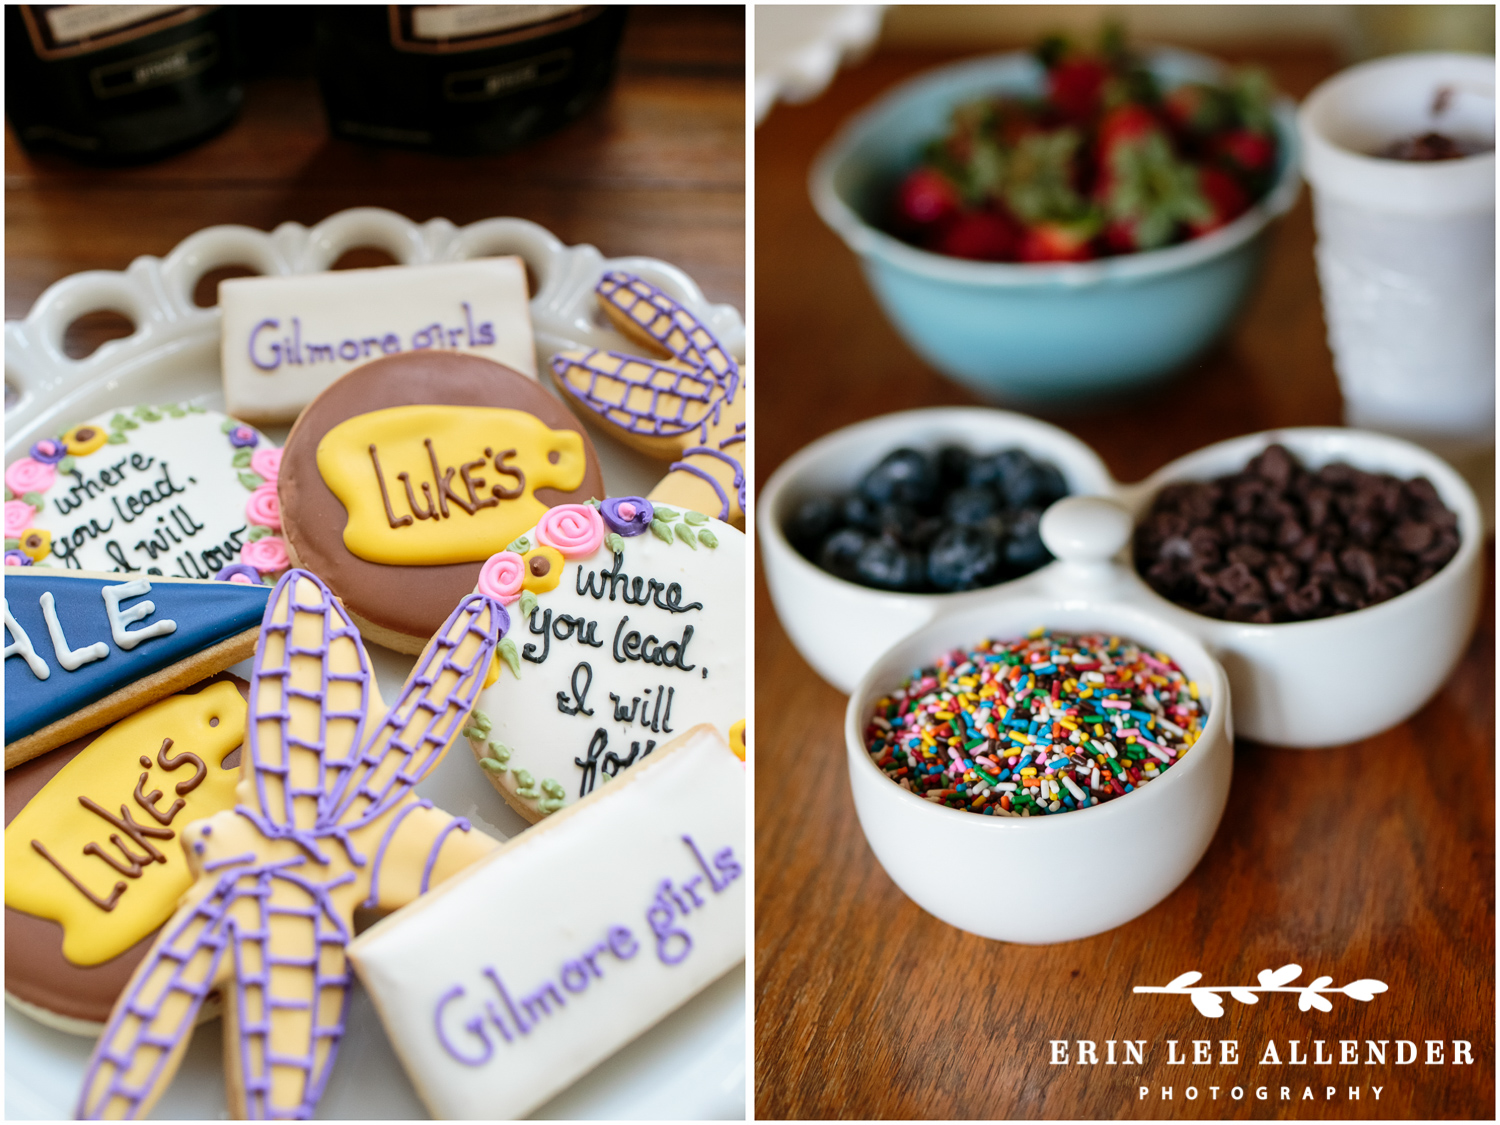 Gilmore_Girls_Iced_Cookies